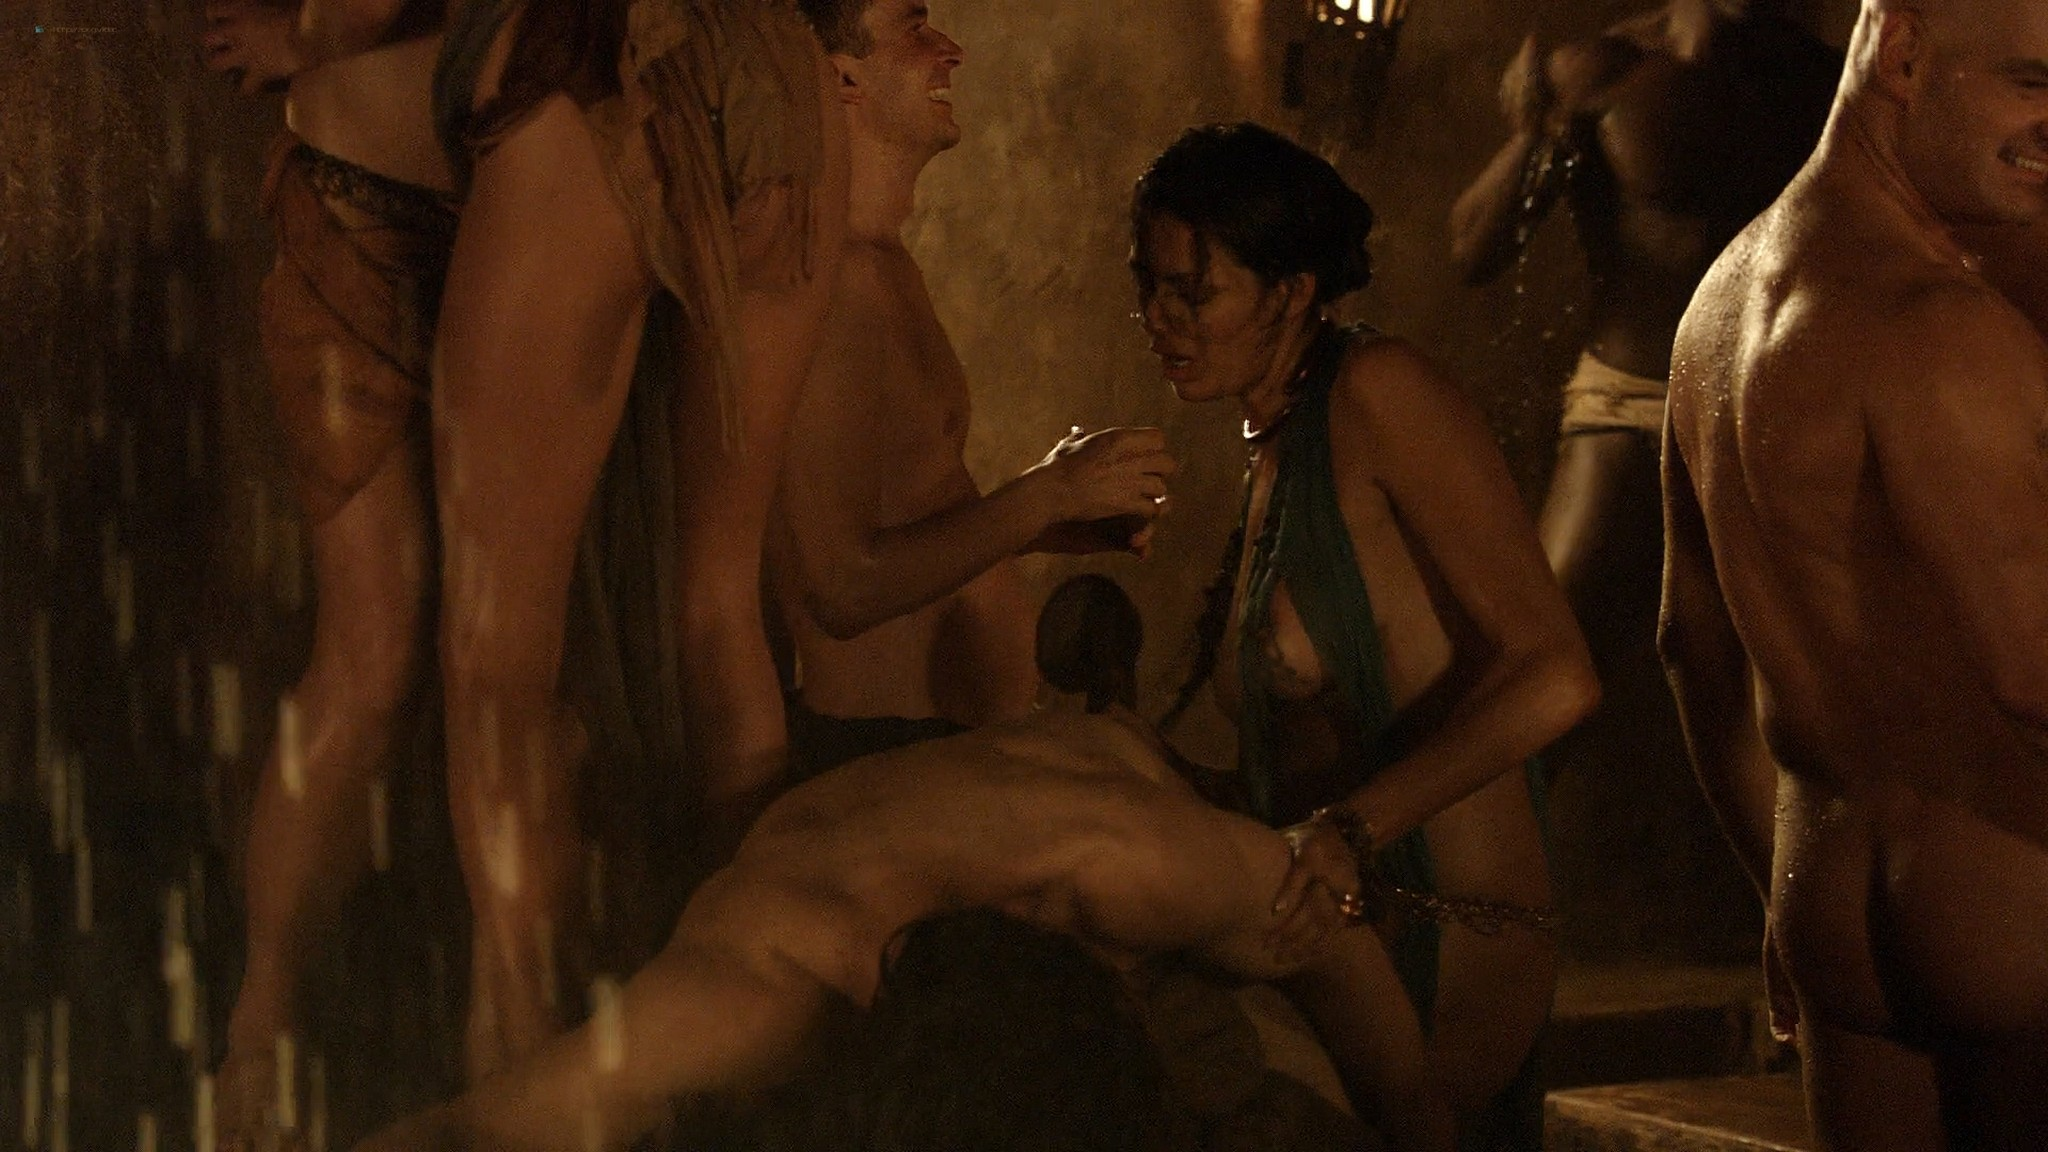 Lucy Lawless nude Lesley-Ann Brandt and other nude sex too - Spartacus (2010) Delicate Things s1e6 HD 1080p BluRay (2)